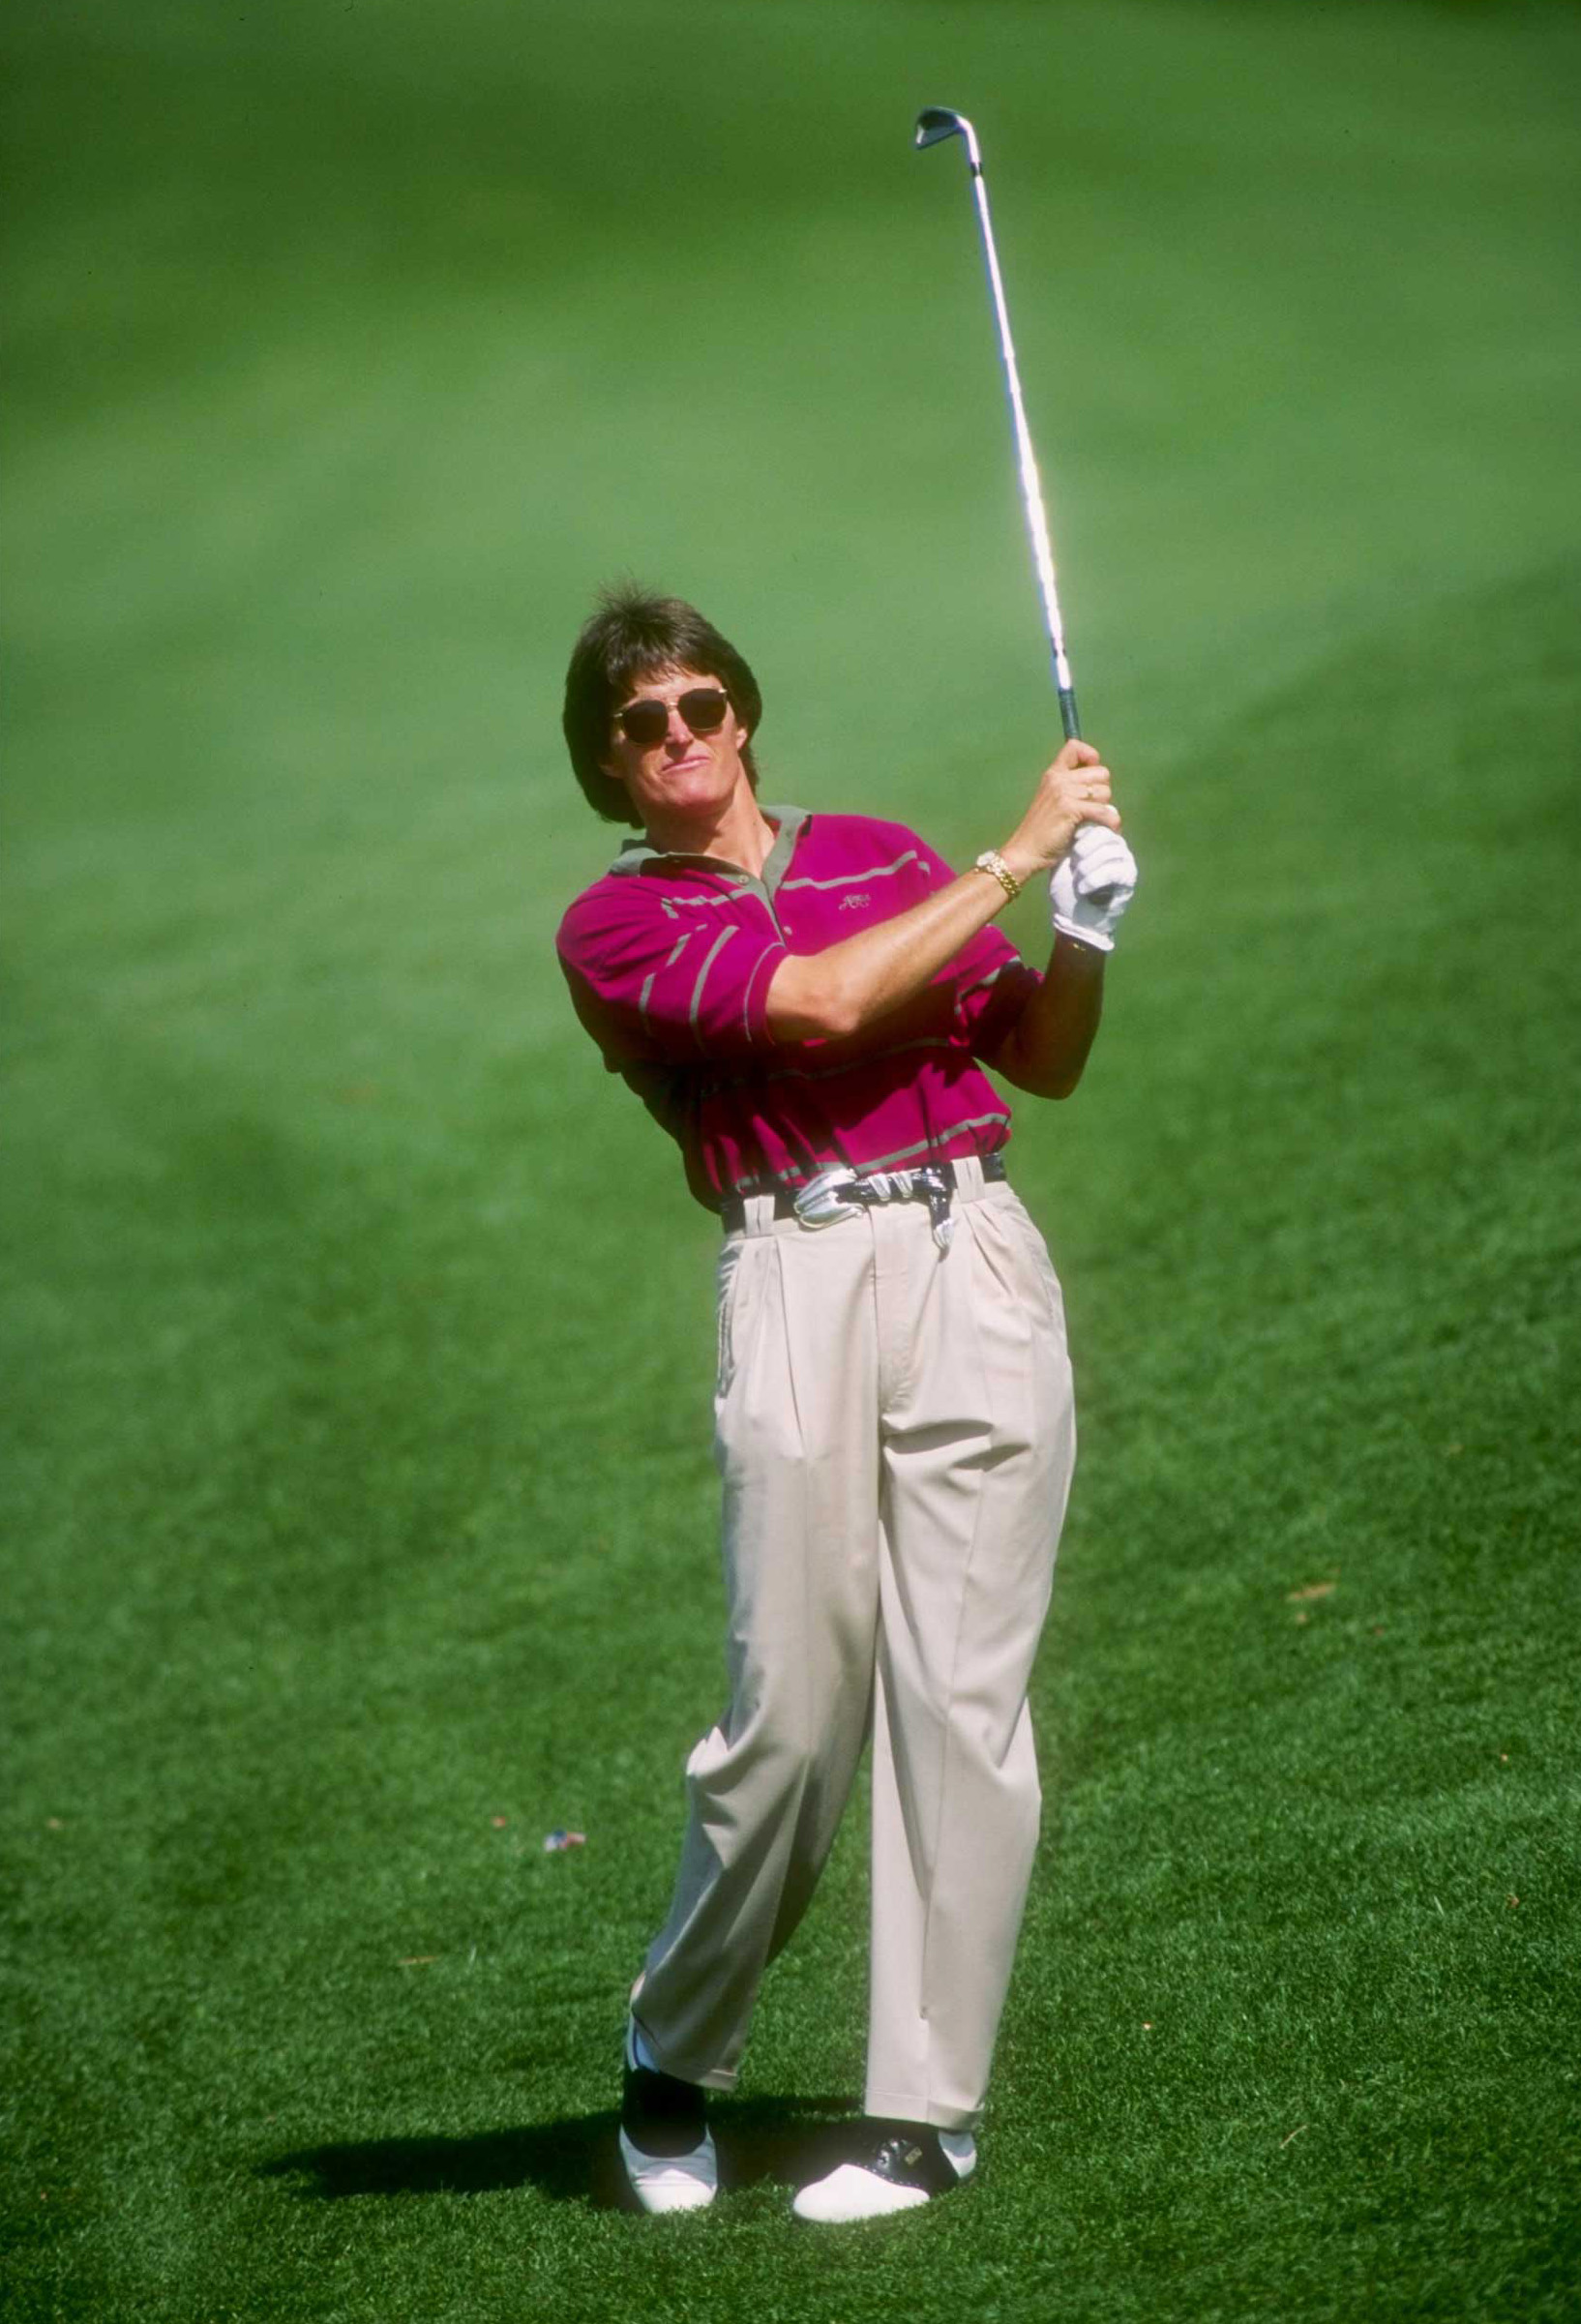 After his sports career, Jenner, seen here at a celebrity golf event in 1993, had a number of small acting jobs and television appearances.